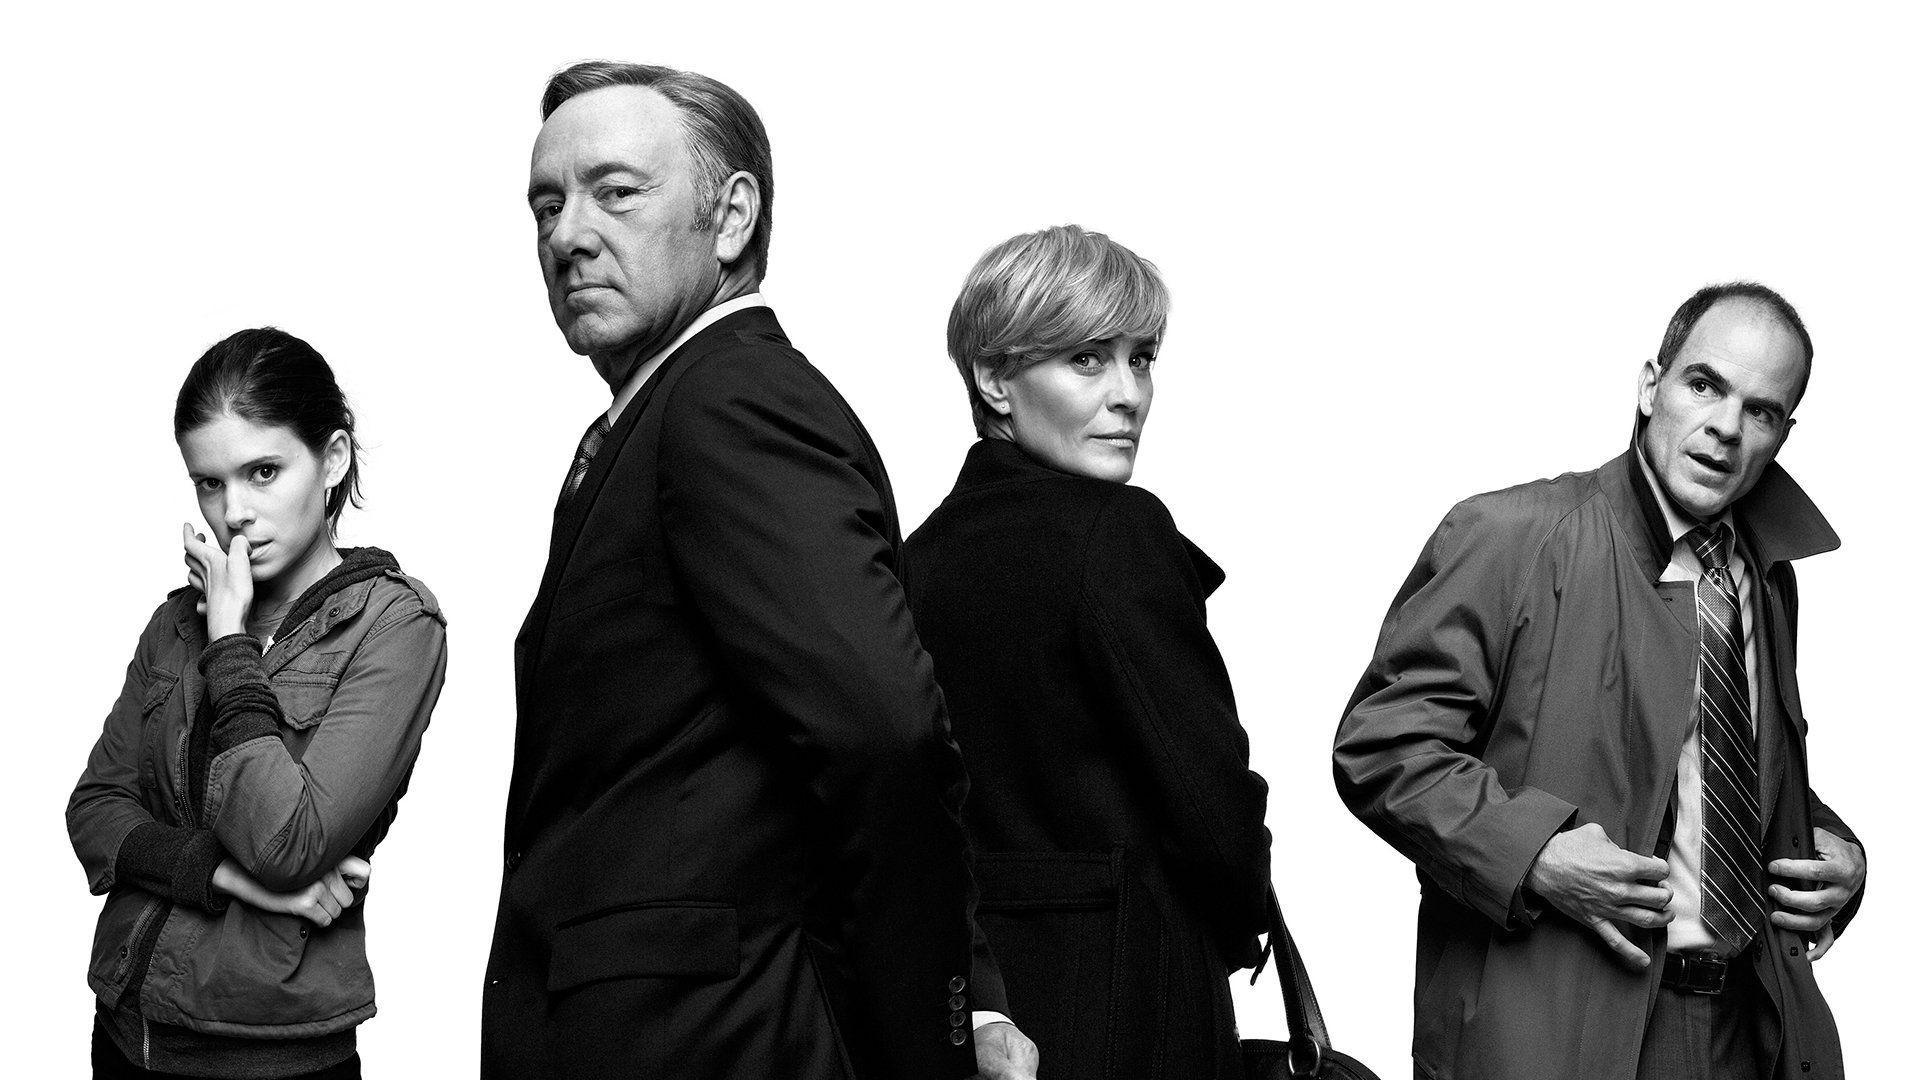 Kevin spacey wallpapers wallpaper cave - Spacey wallpaper ...